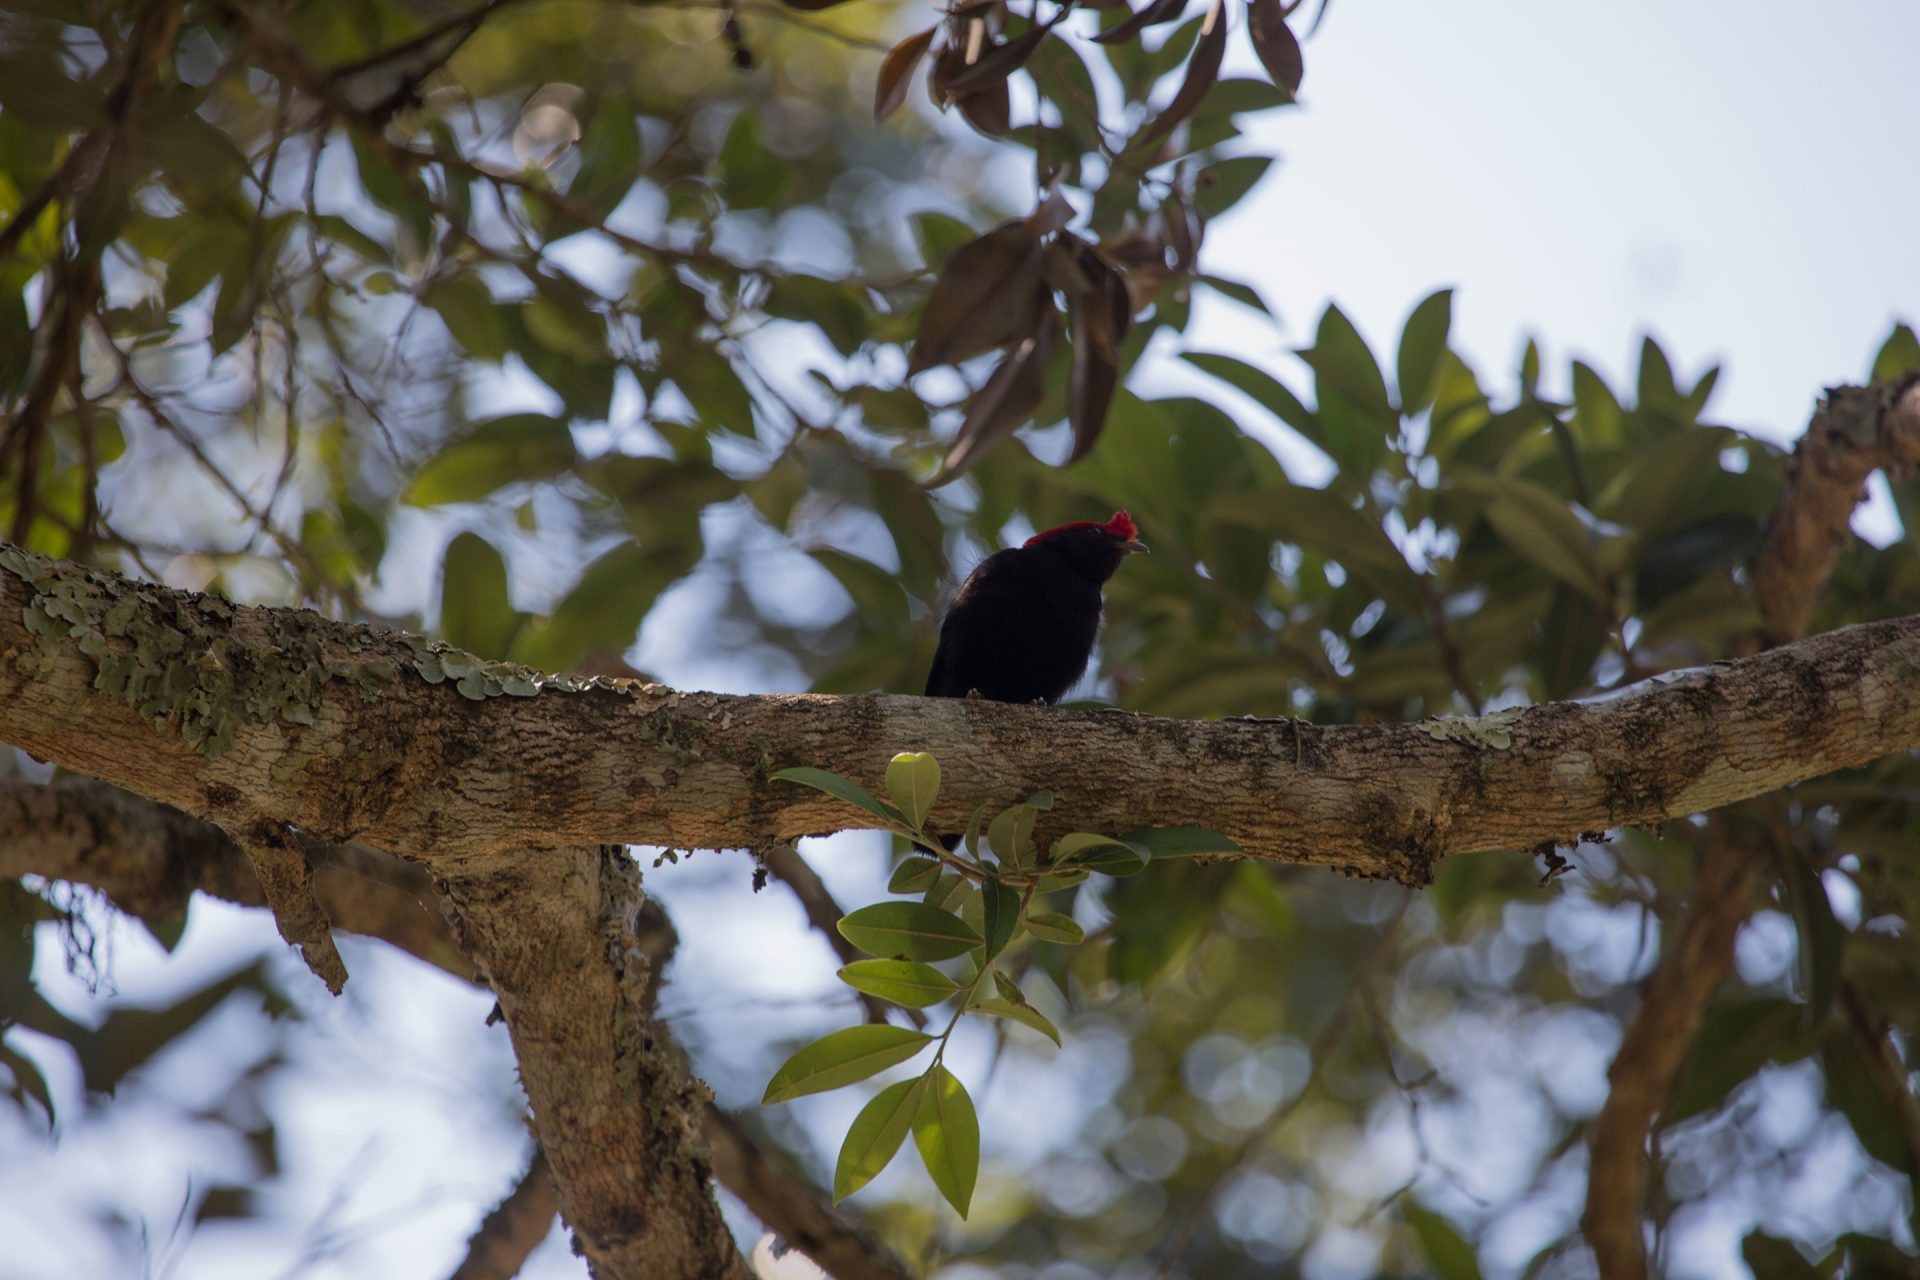 Helmeted Manakin was located in the forest near the waterfall at Canastra.